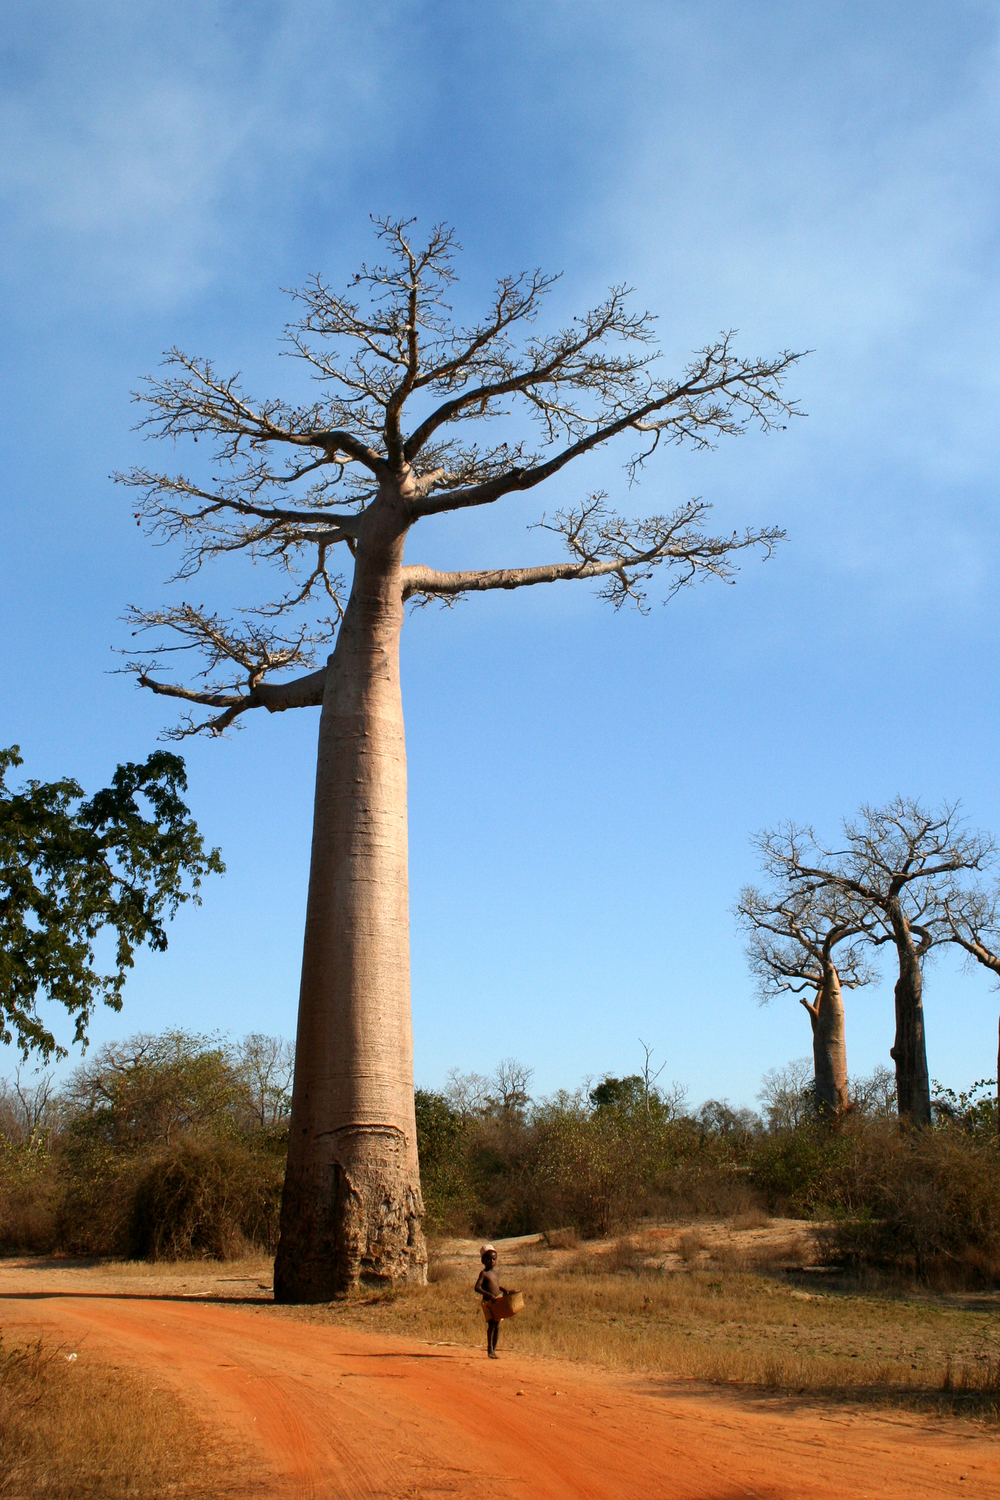 The Baobab and the Boy, Madagascar, 2005